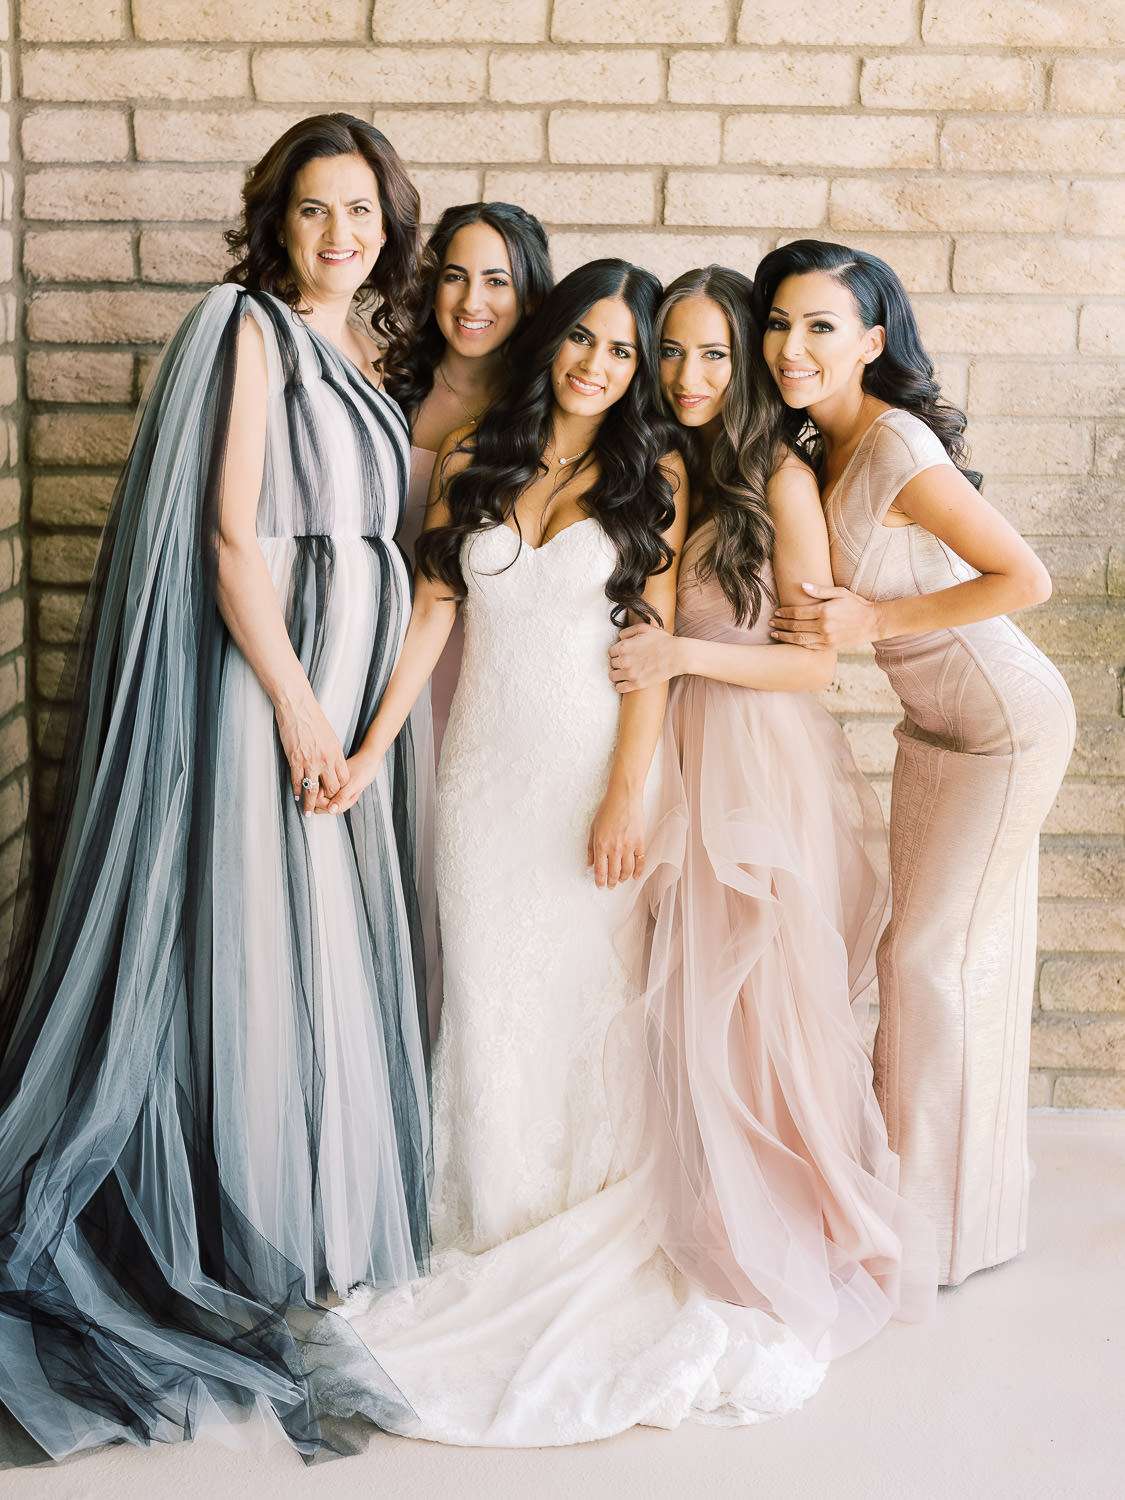 Bridal-Party-Dress-Inspiration